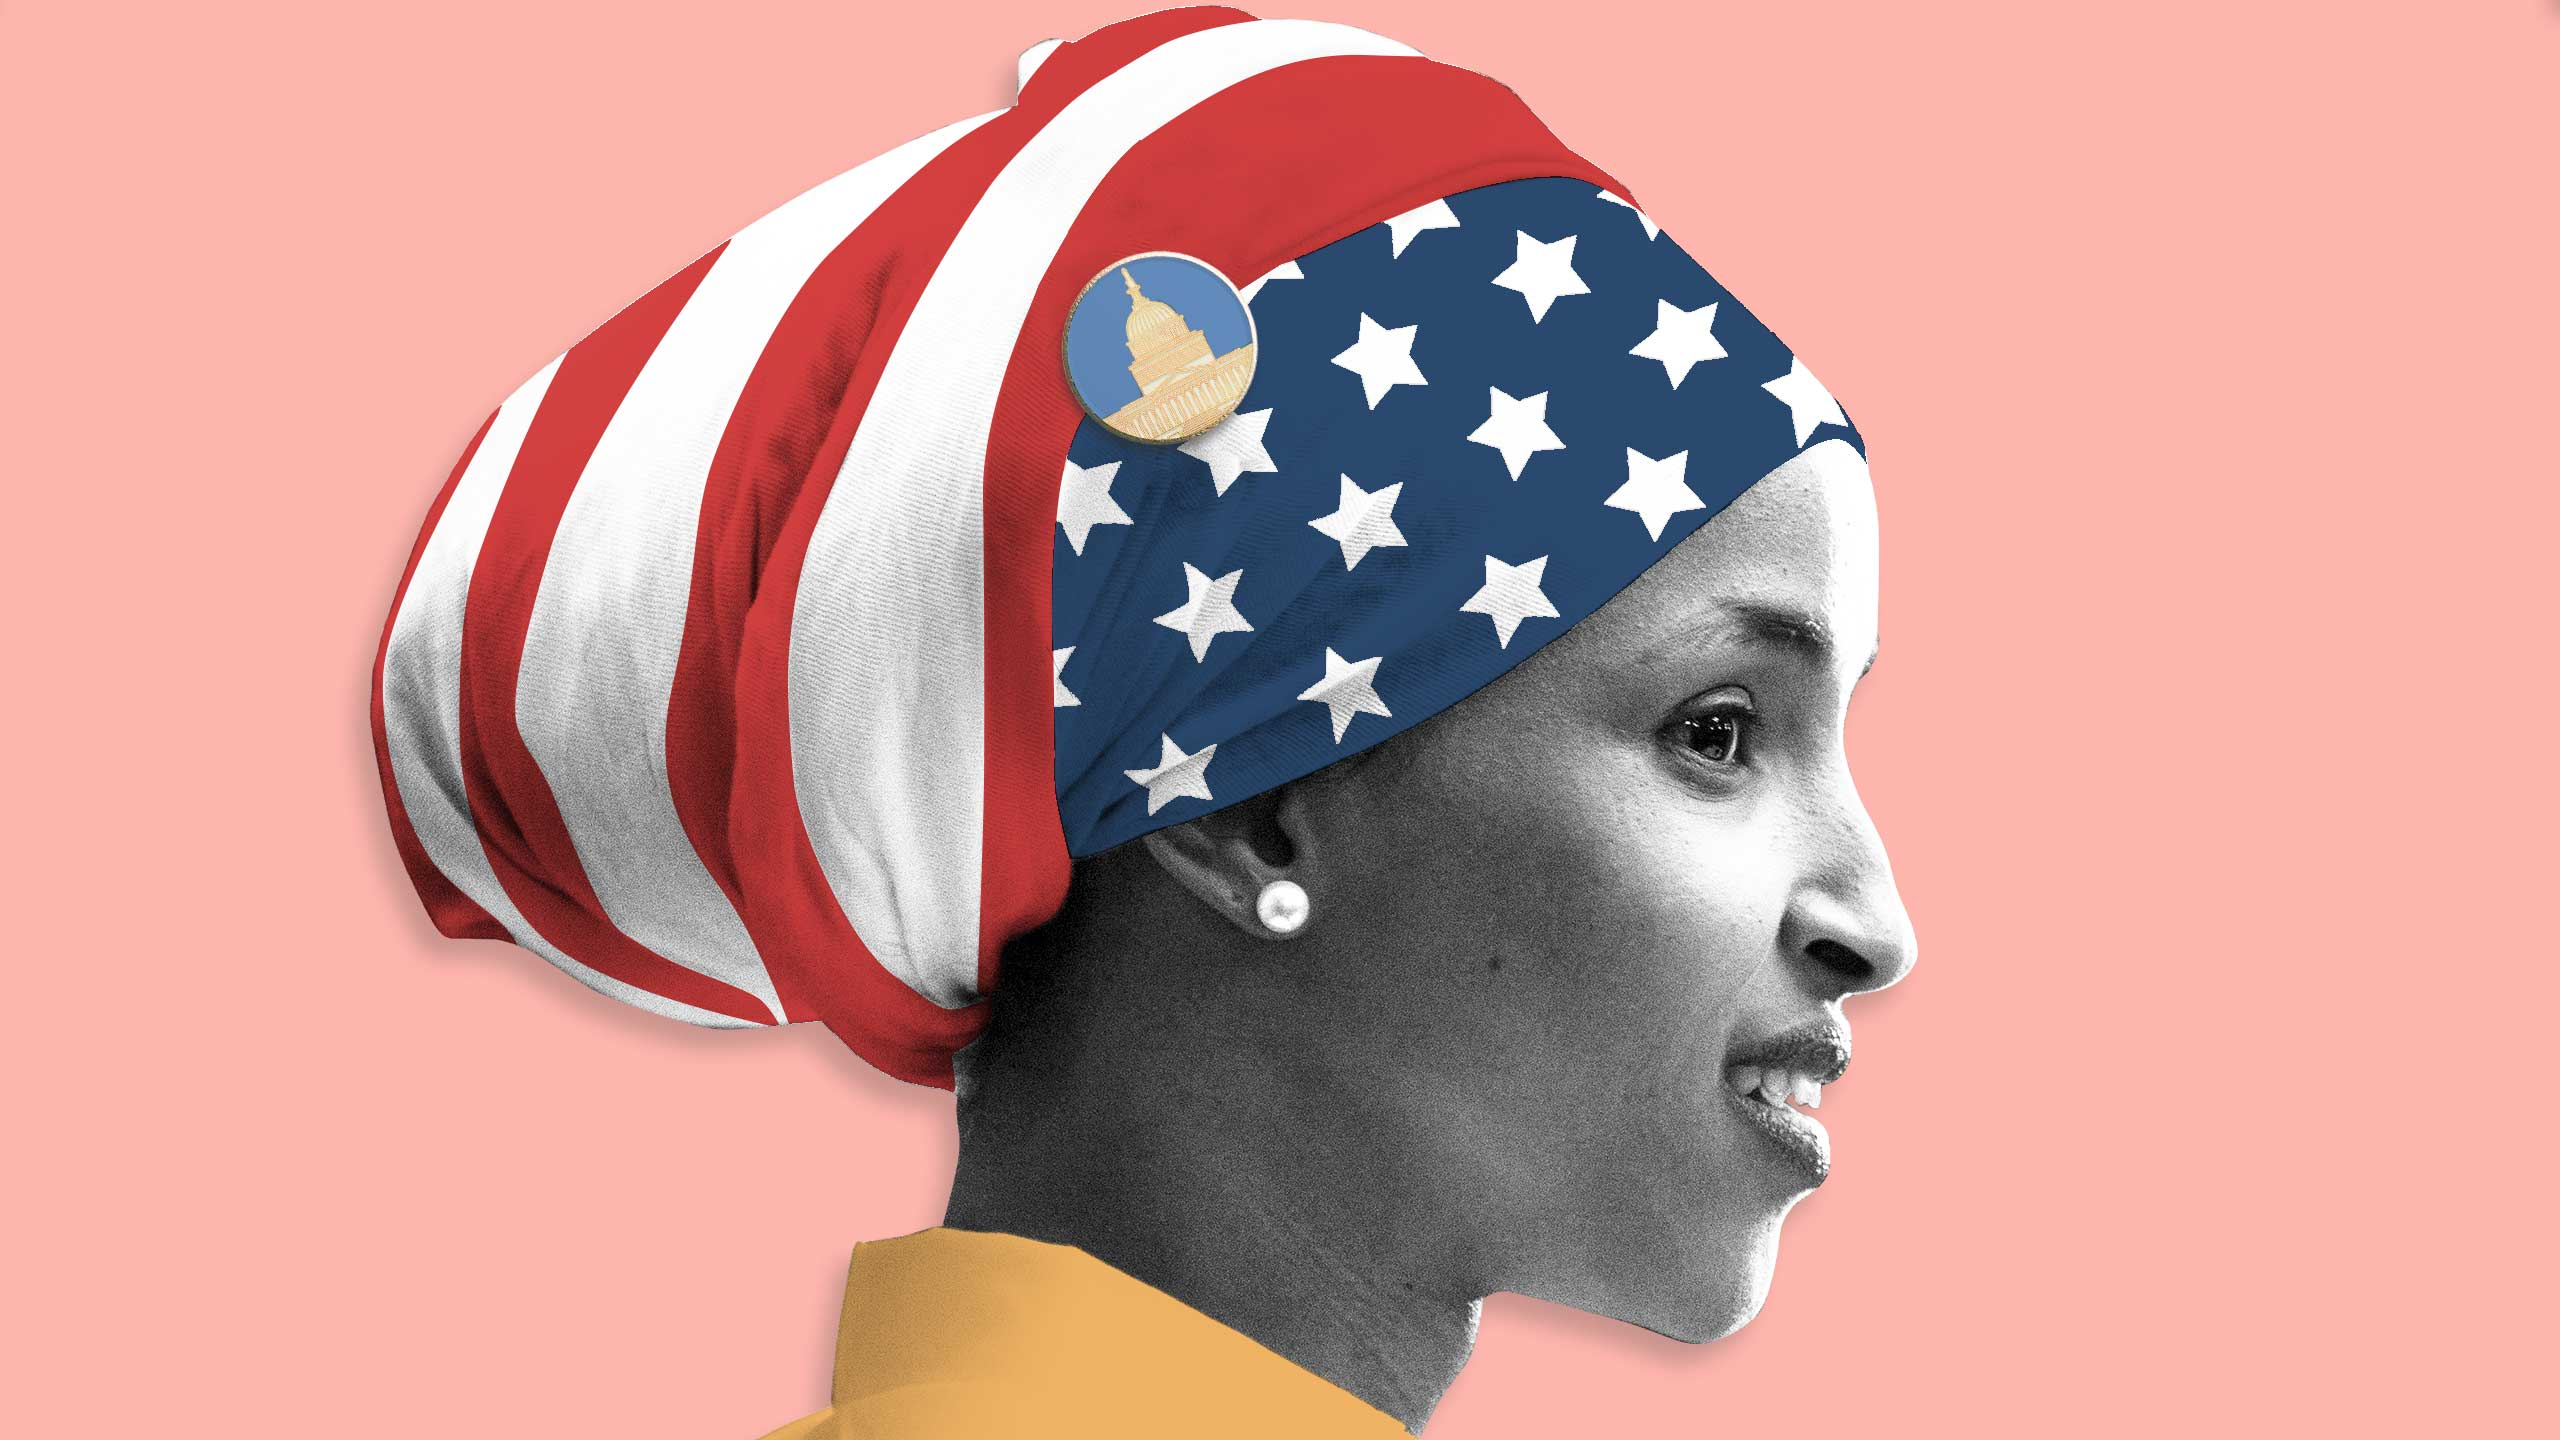 ilhan omar is being attacked because of criticizing the